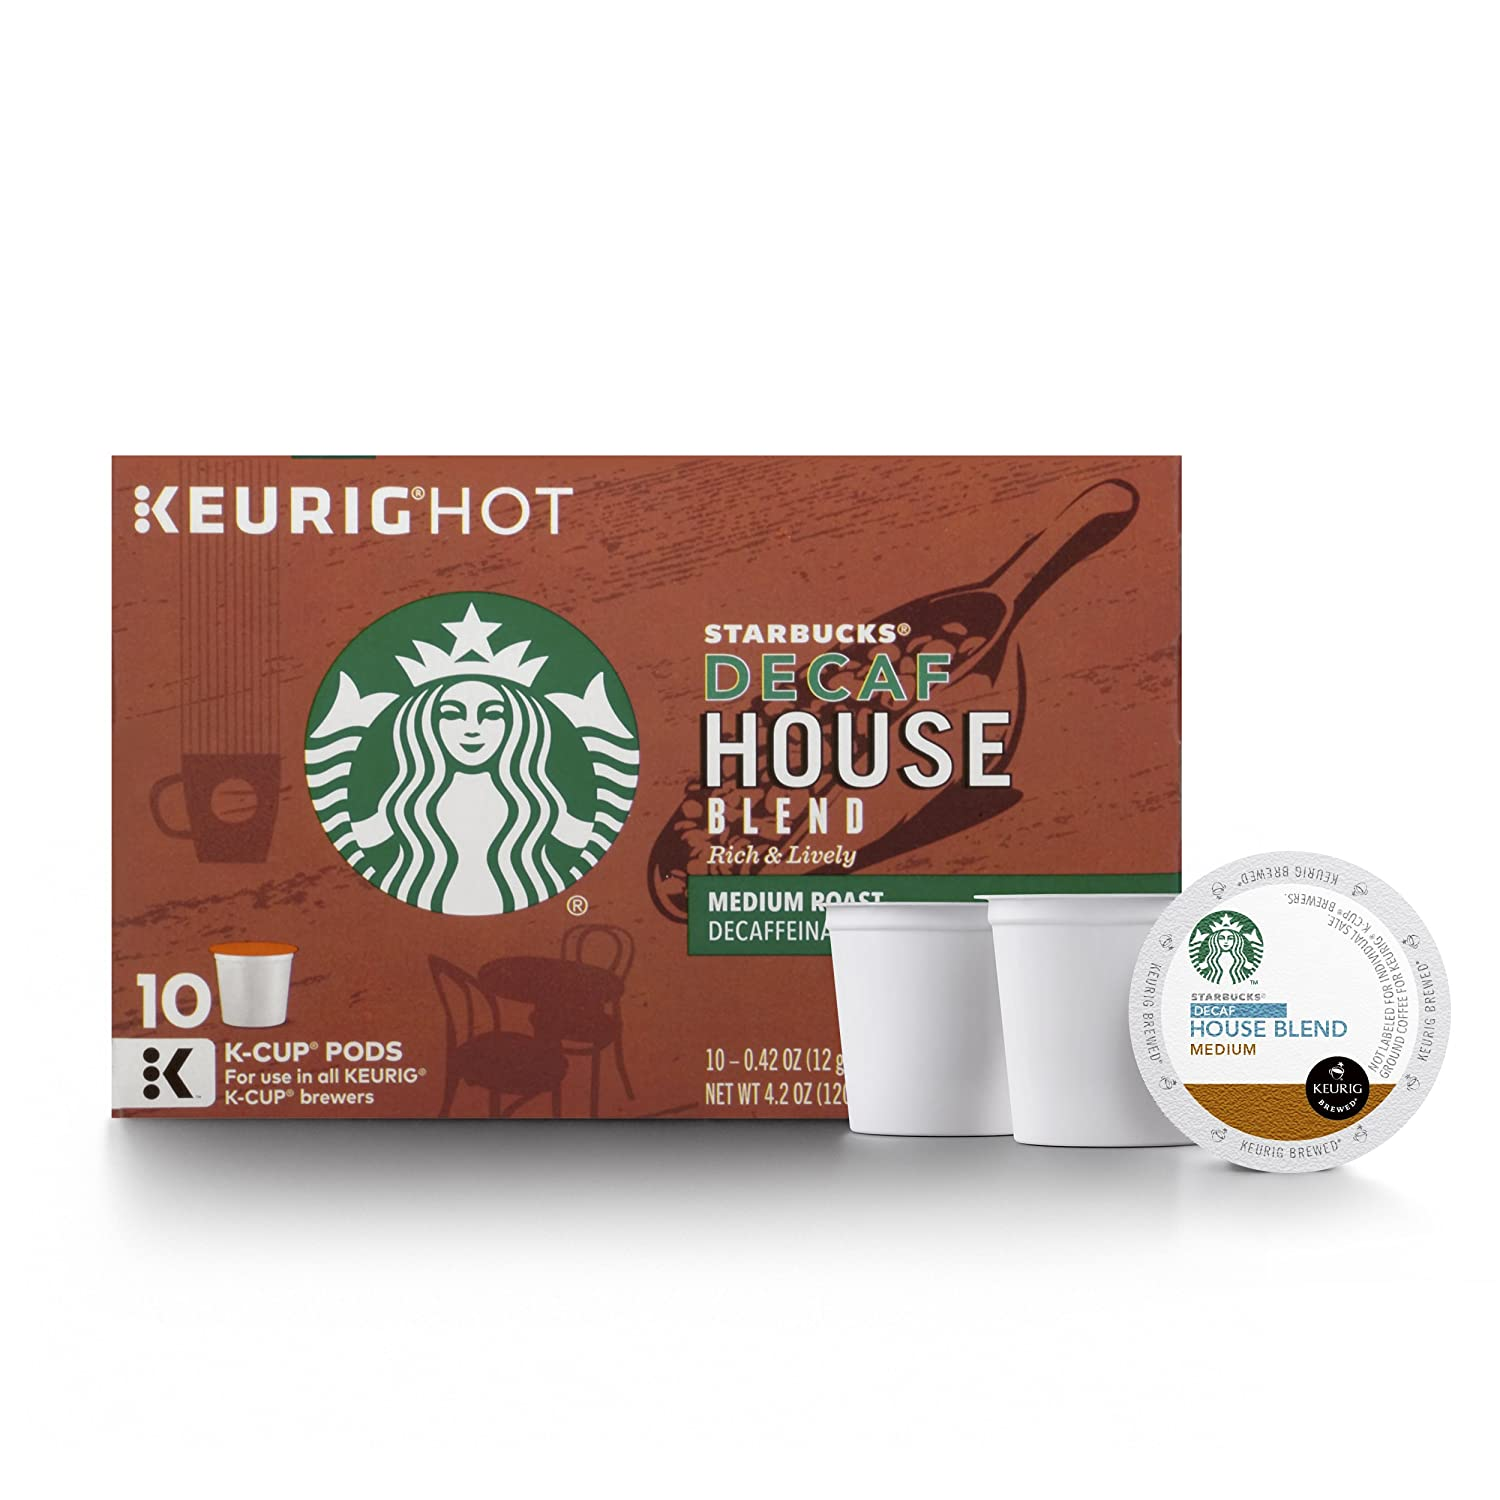 Starbucks House Blend Keurig Pods, Decaf, Medium Roast Coffee, Single Serve K-Cups, 10 Count, Pack of 6